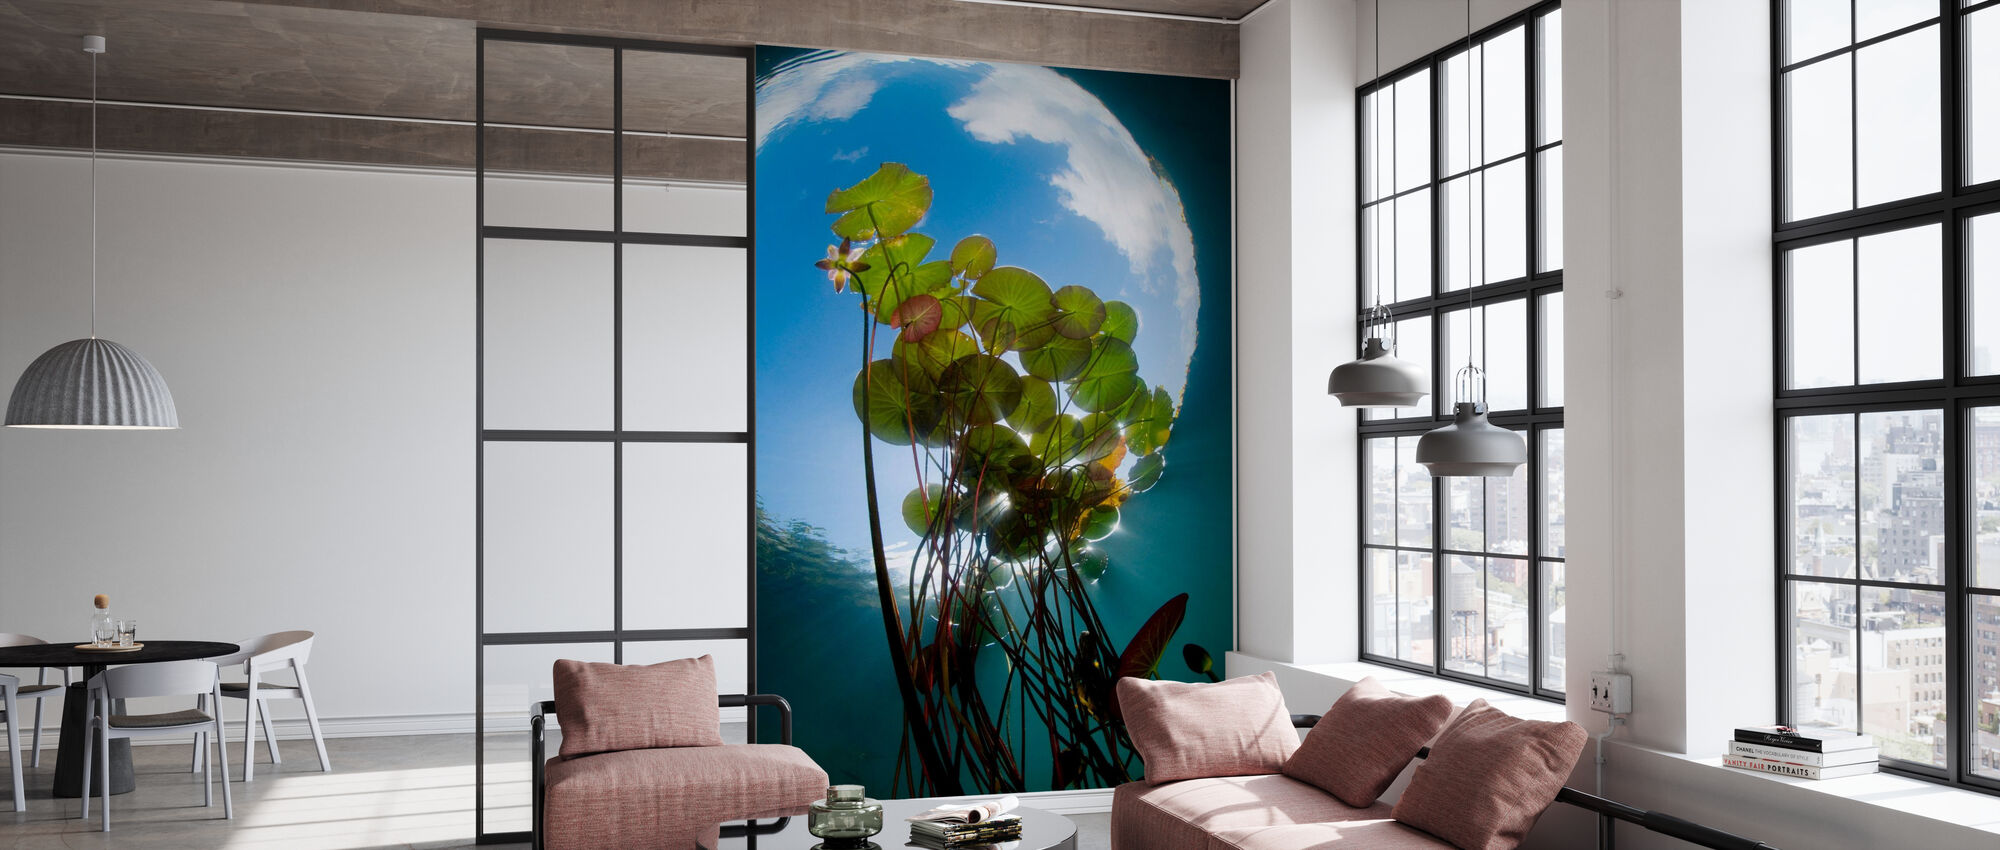 Floating Water Lilies - Wallpaper - Office